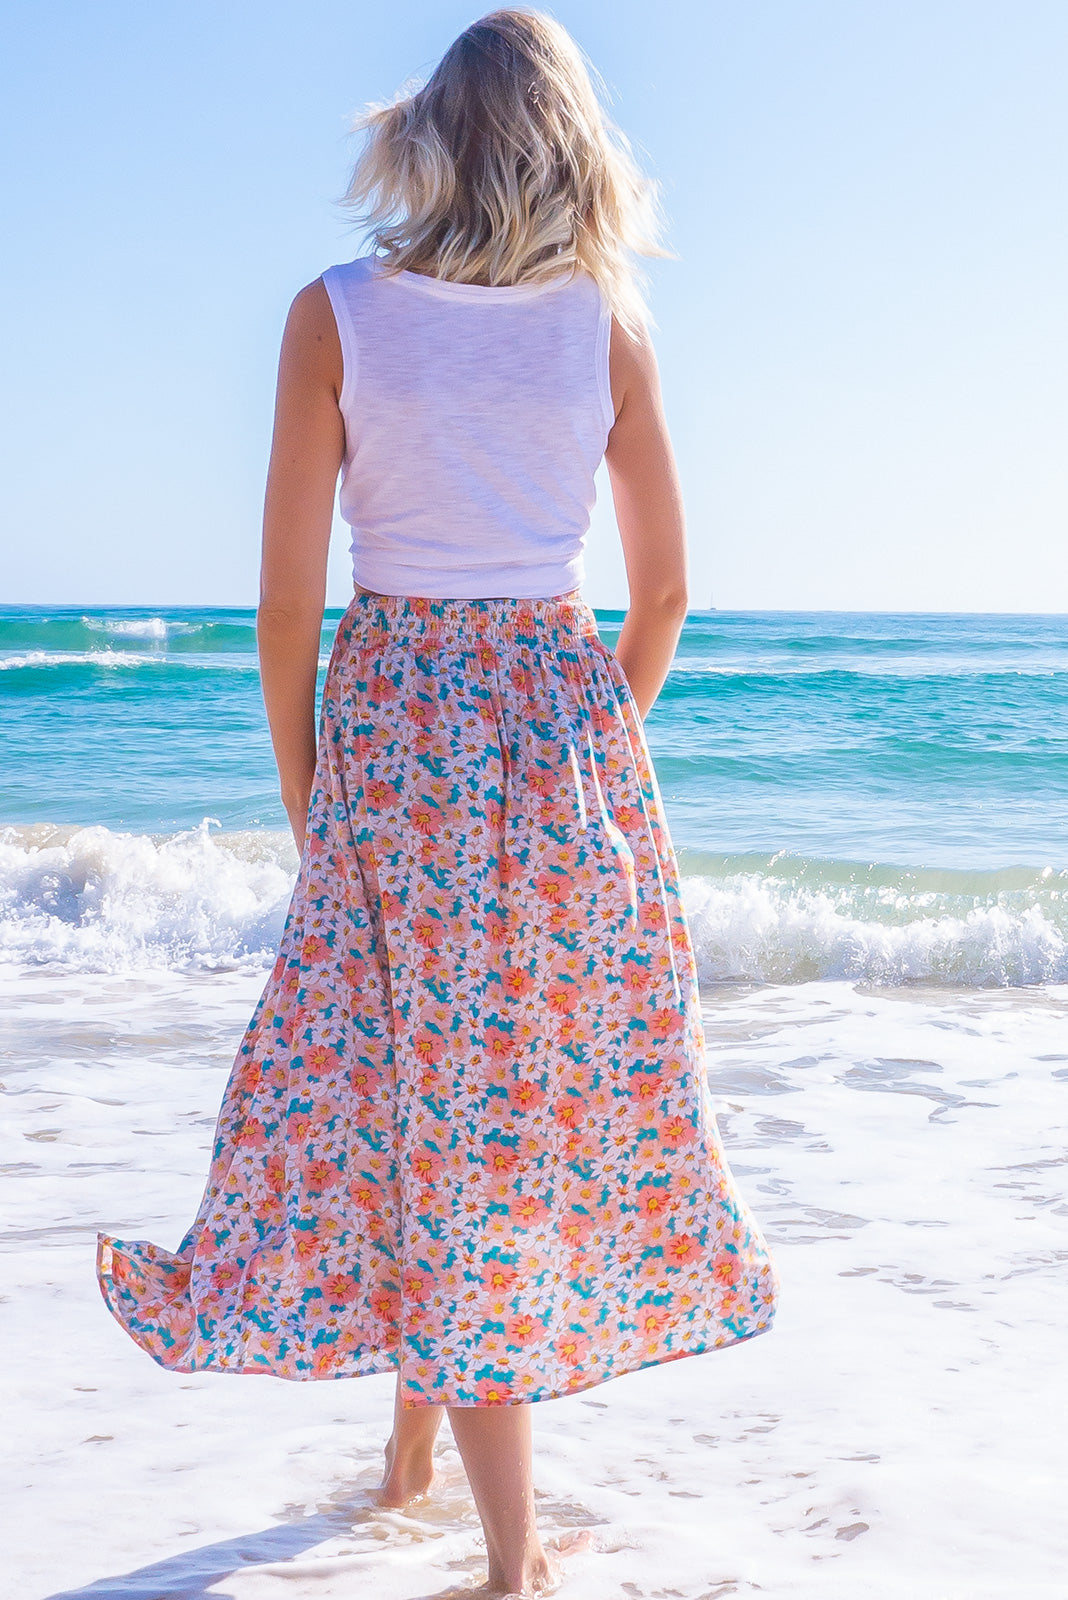 Atlantis Peach Blossom Maxi Skirt